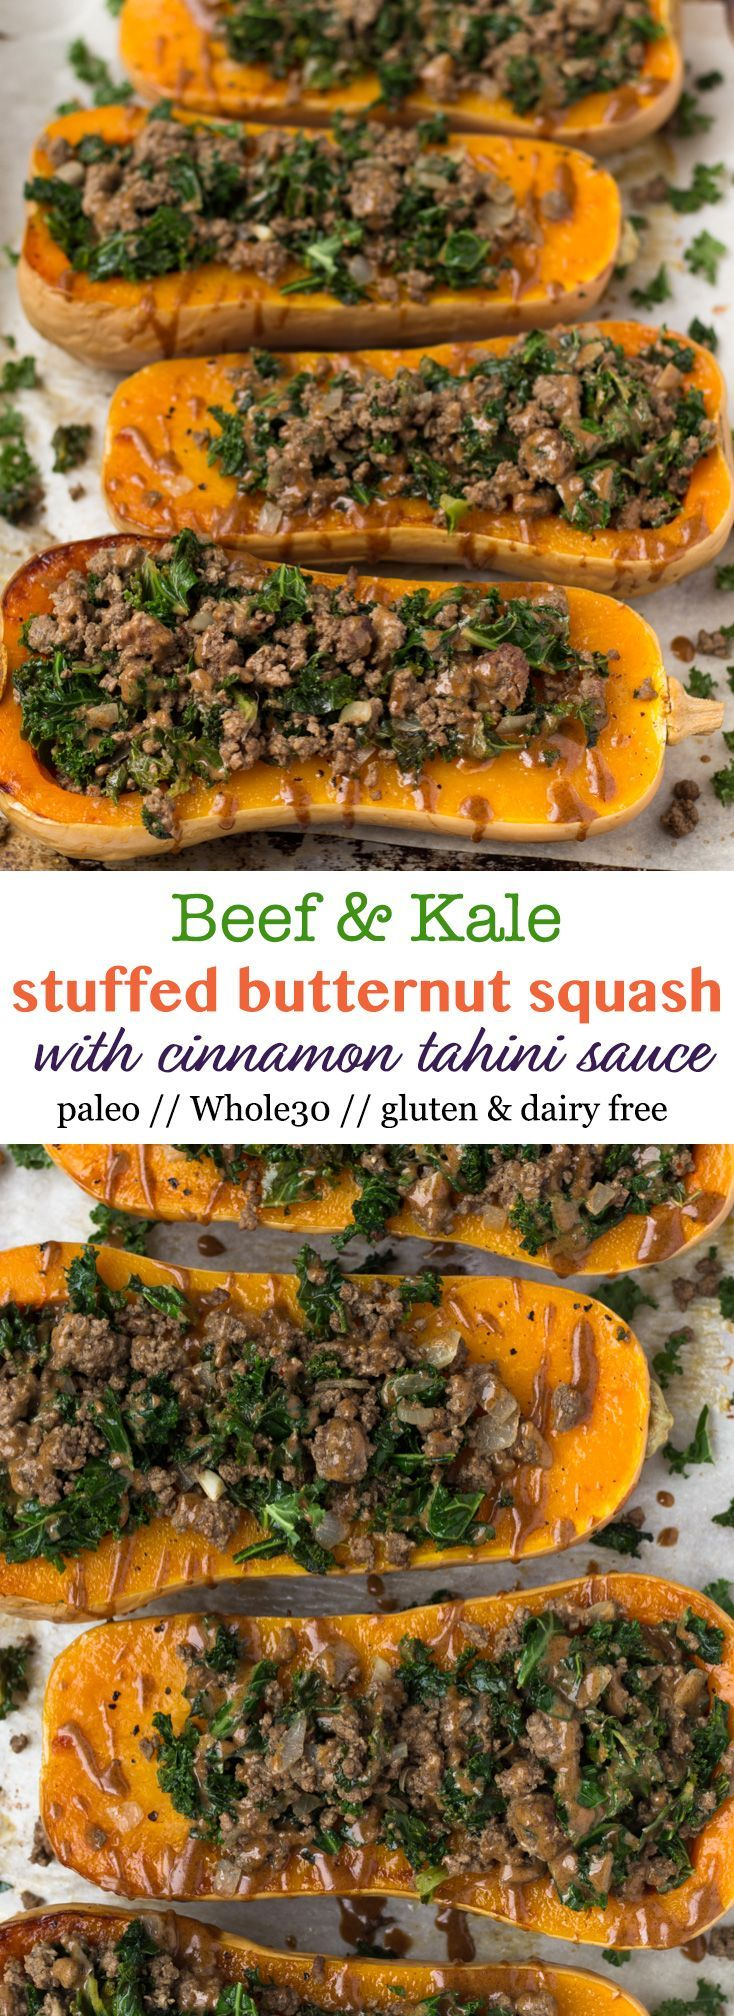 An easy and healthy fall meal, this Kale & Beef Stuffed Butternut Squash with Cinnamon Tahini Sauce is packed with protein, carbs, and healthy fats and is paleo, gluten free, and Whole30 approved! - Eat the Gains via @eatthegains